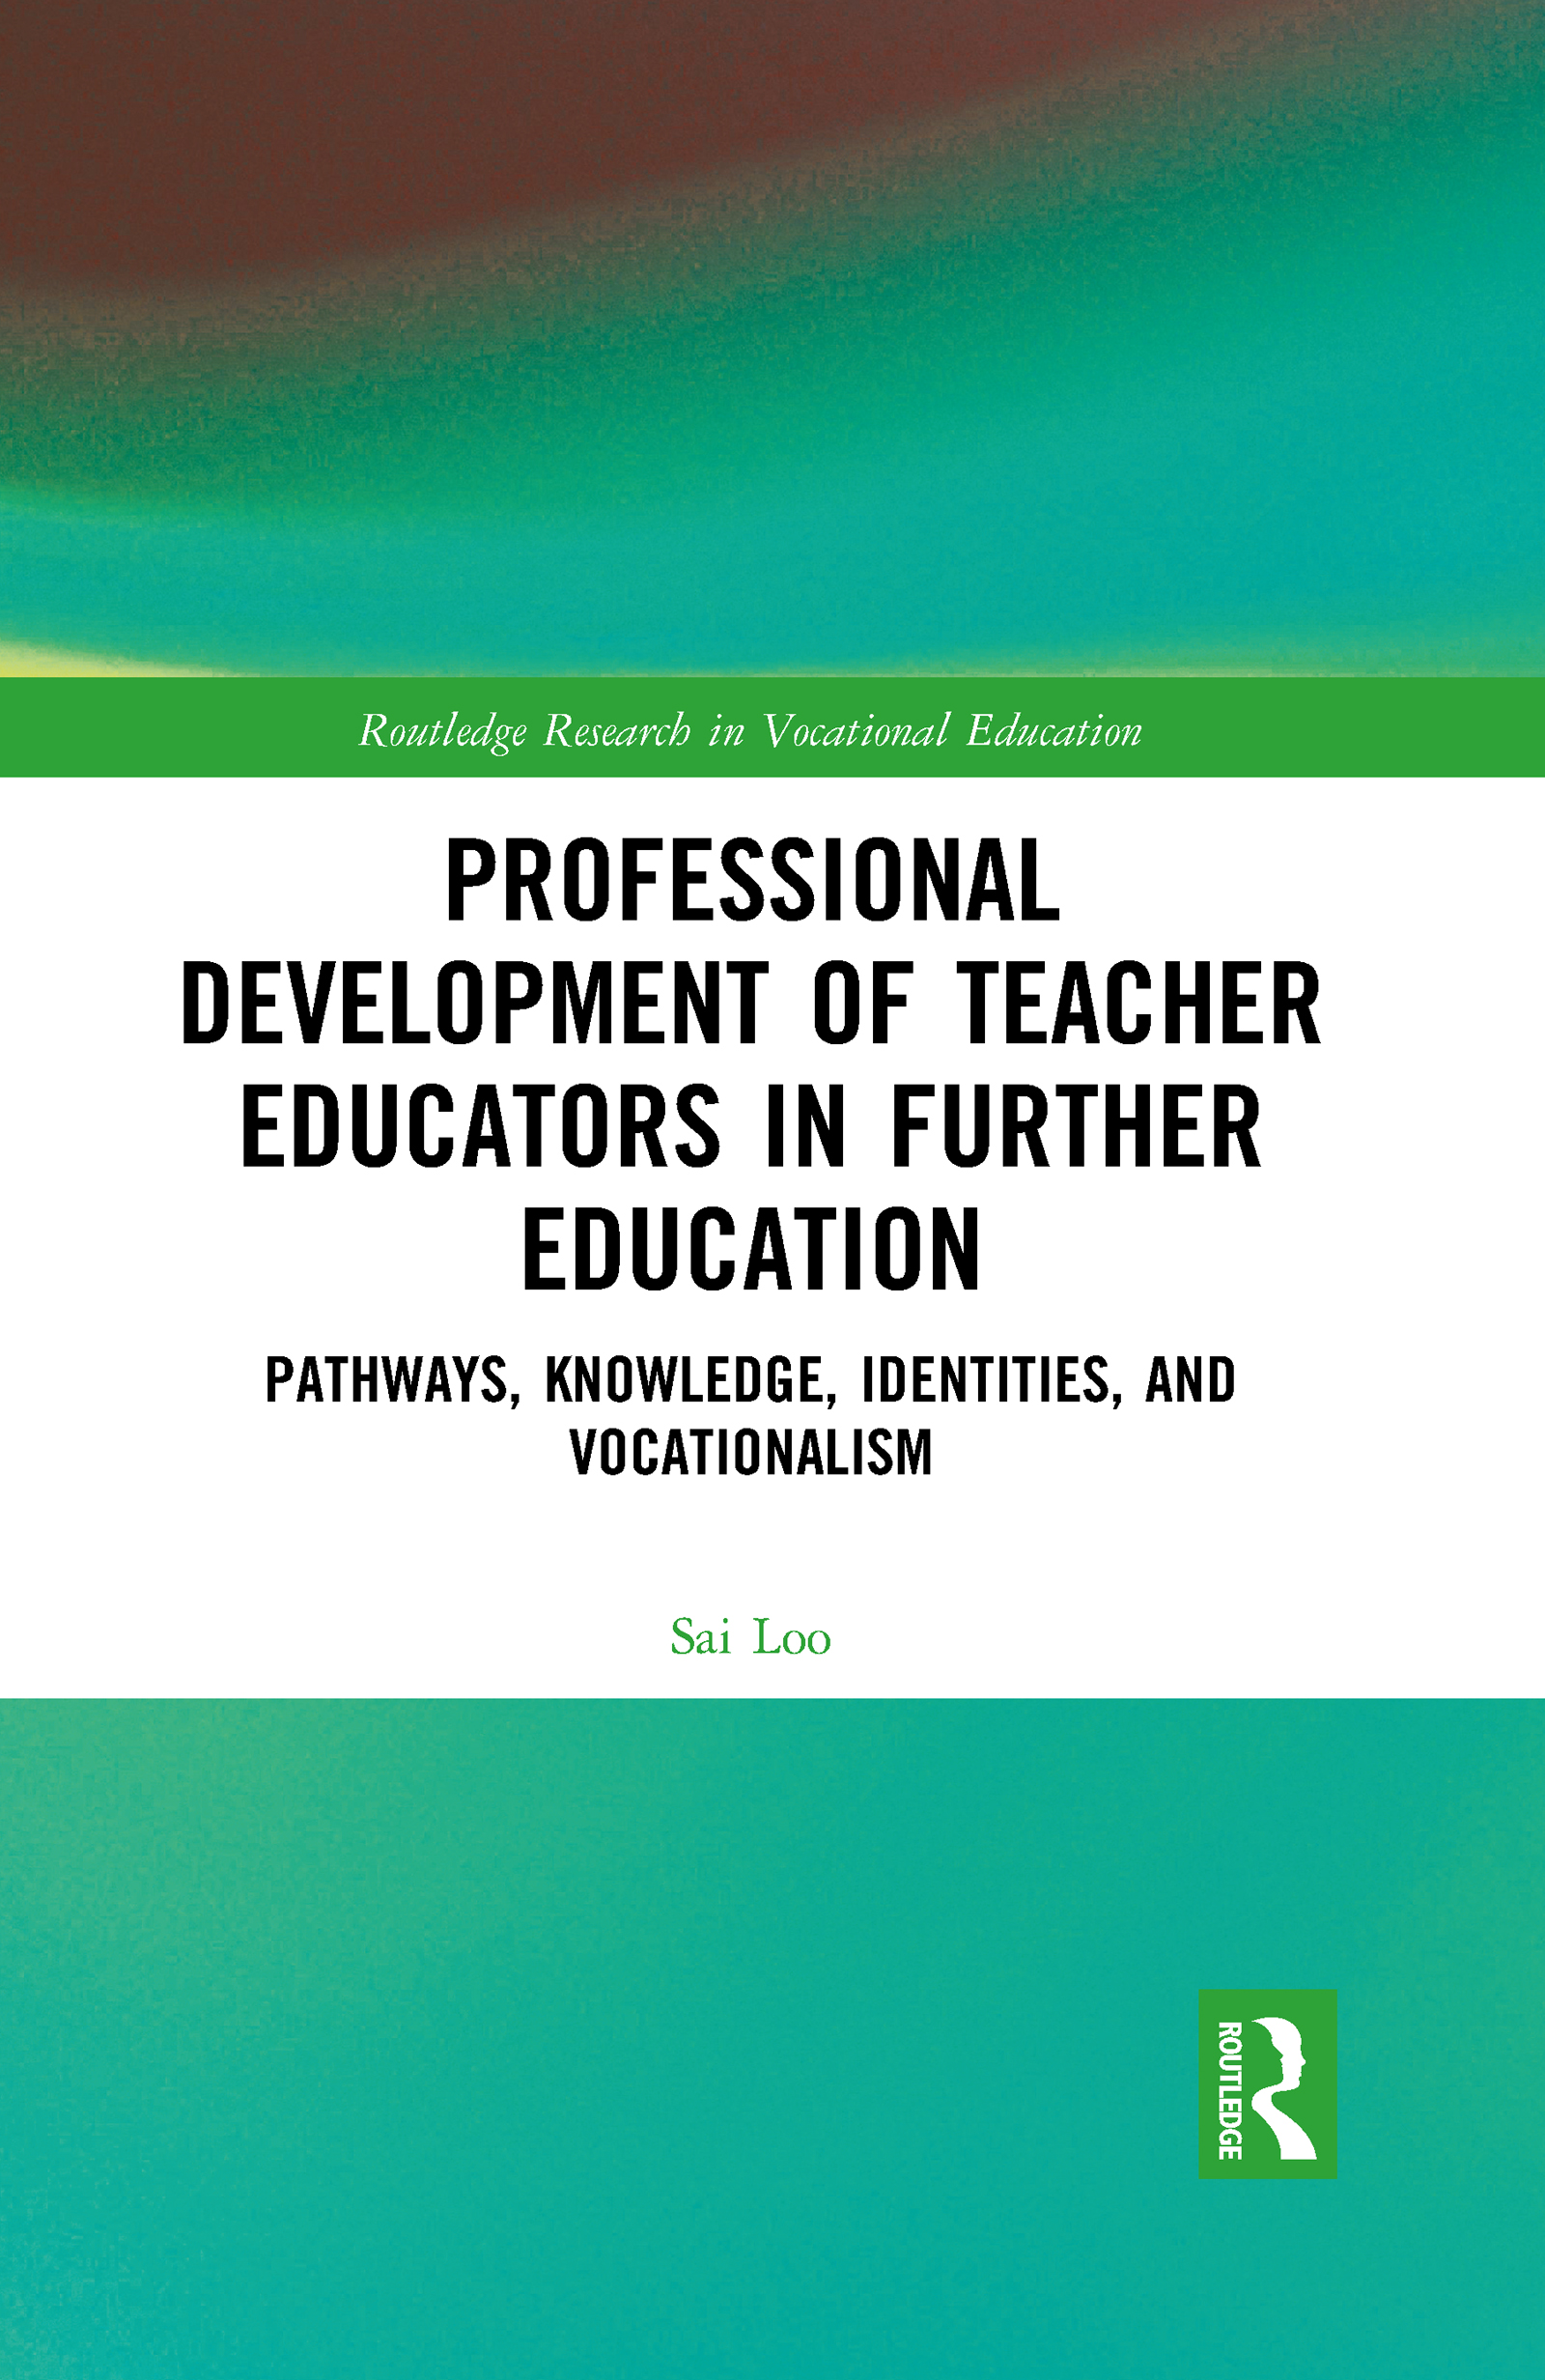 Professional Development of Teacher Educators in Further Education